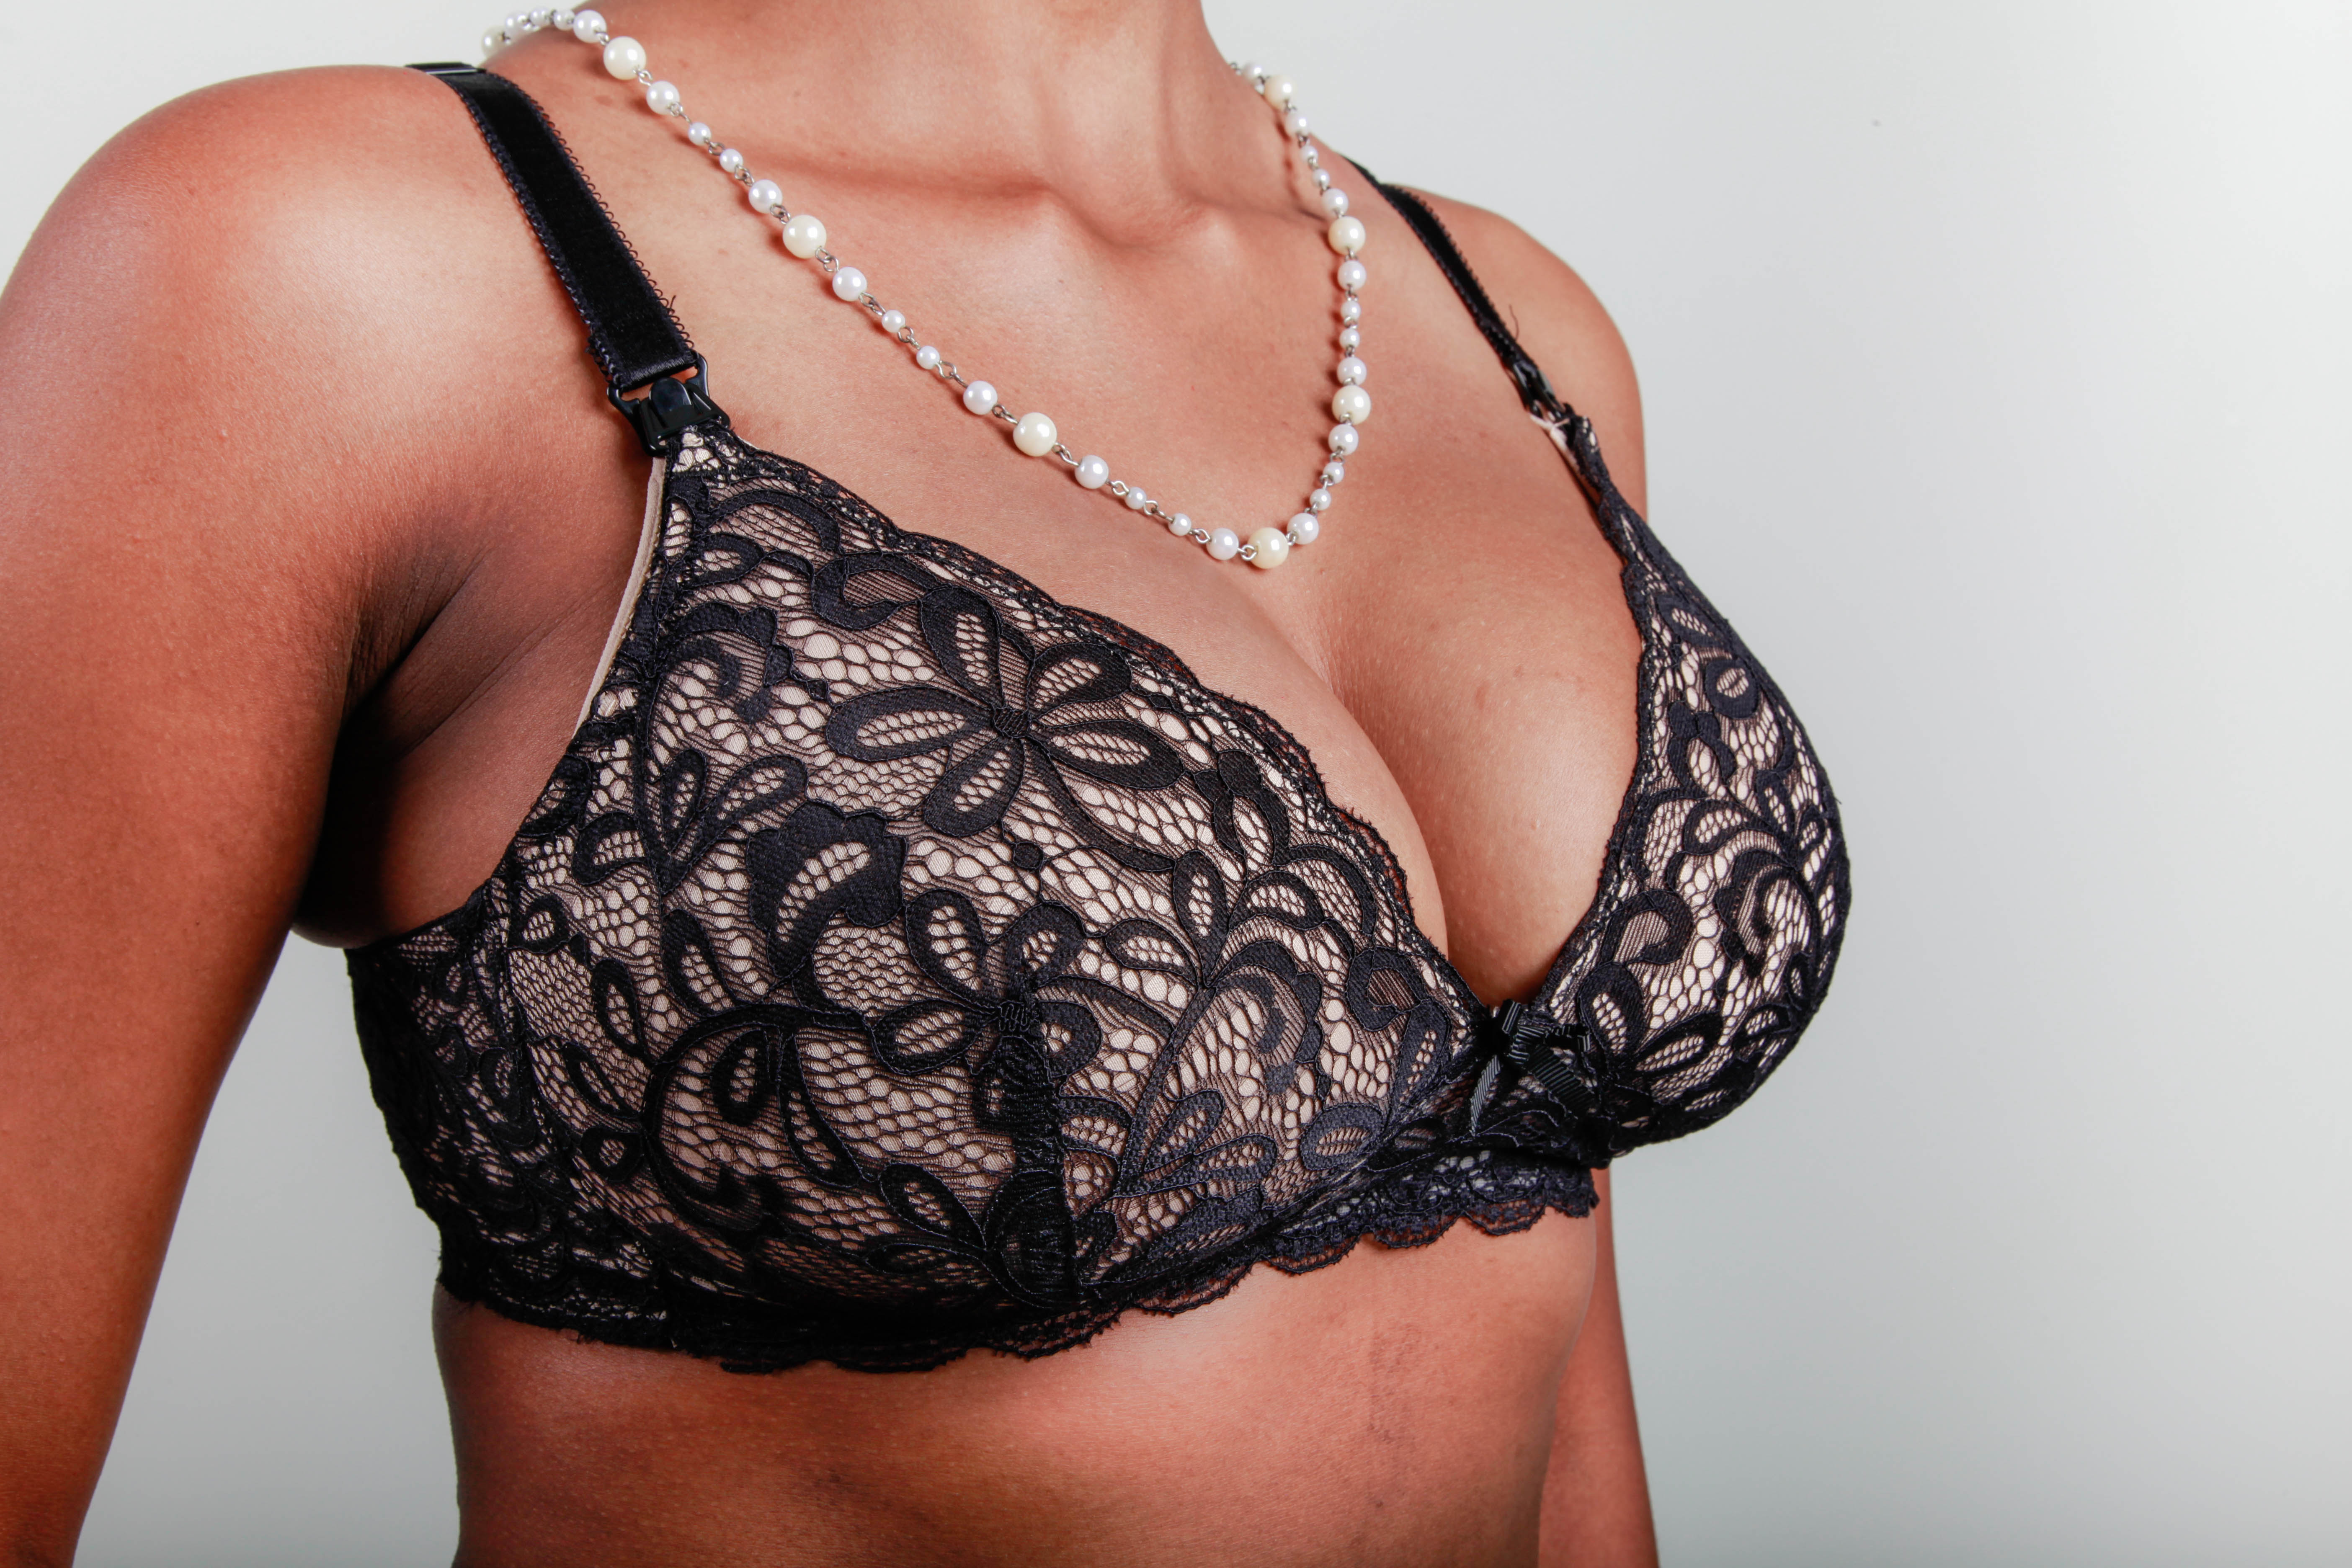 Sophie and Jane Lingerie Florence Nursing Bra - By Megan Kelly